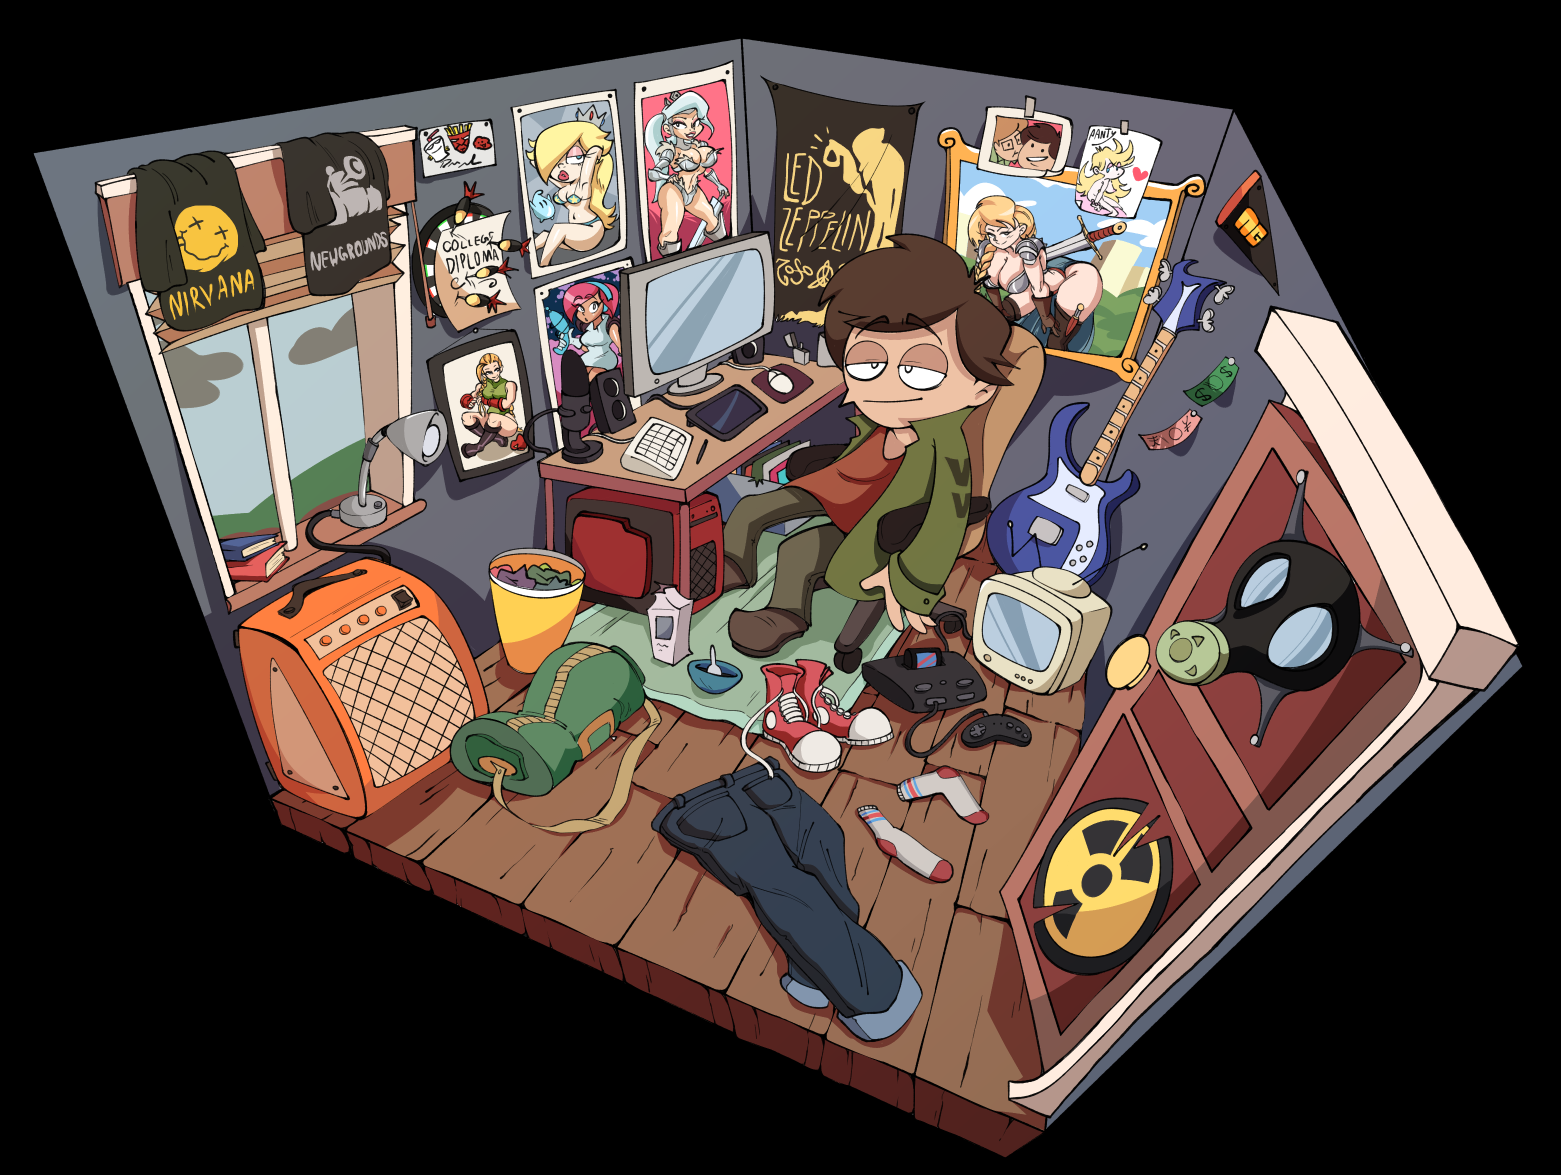 My Room by Arzonaut on Newgrounds